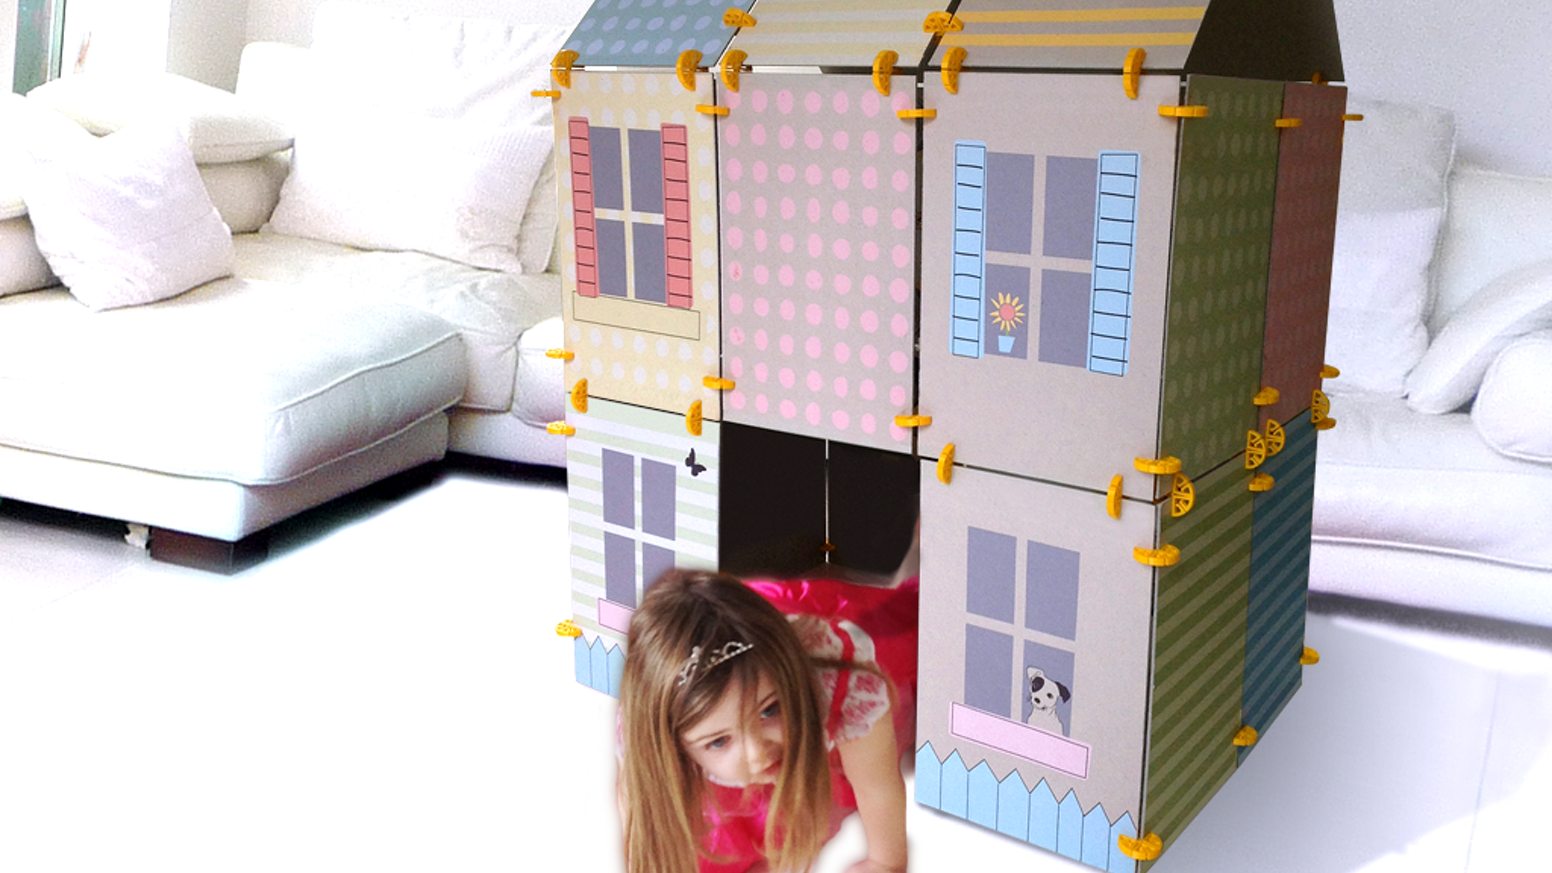 The construction kit for little kids to build big